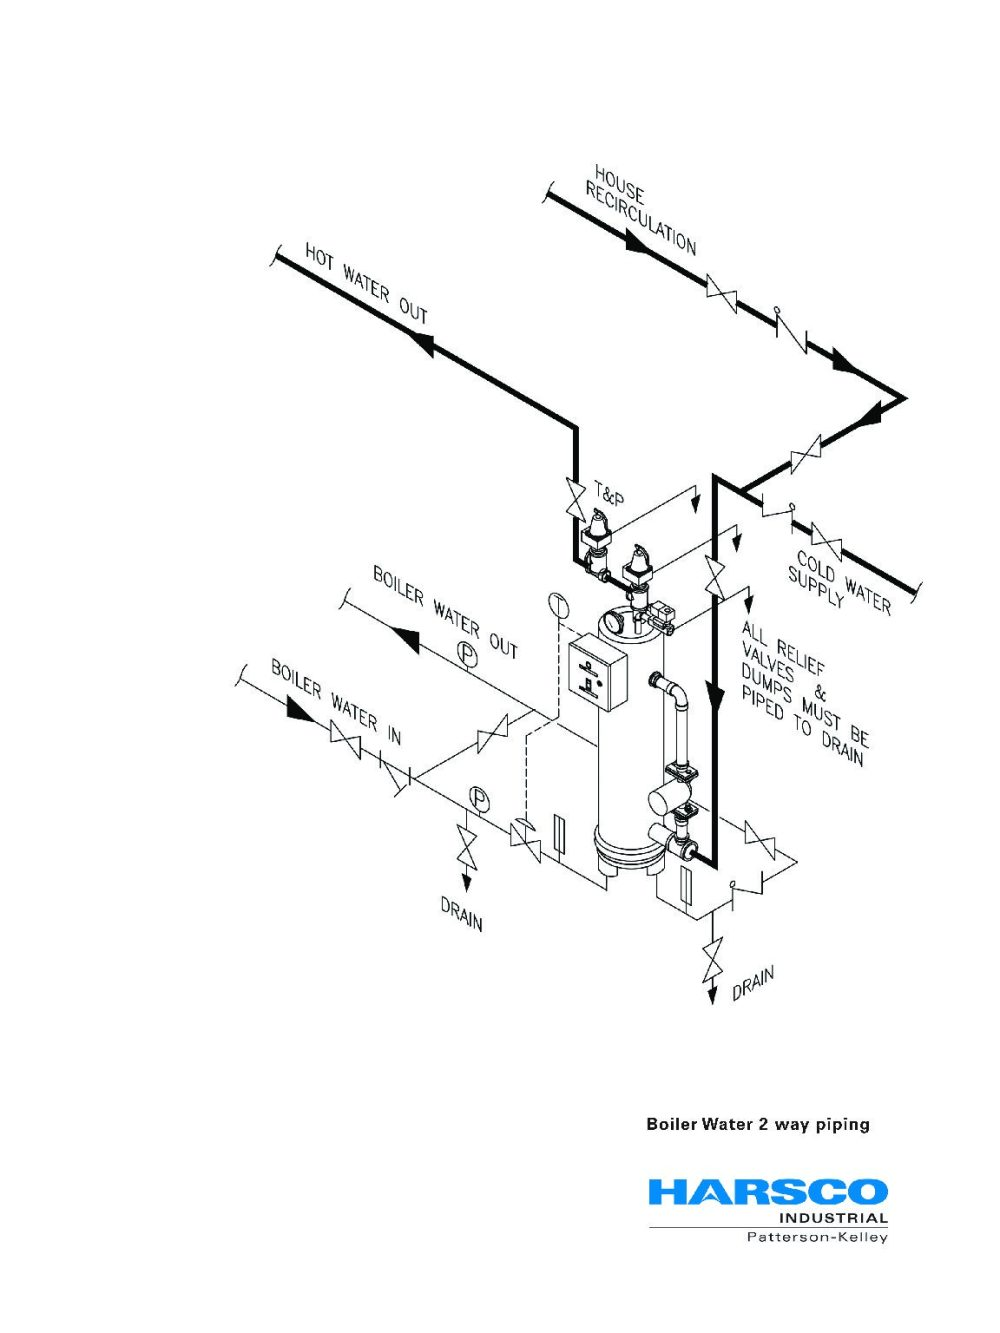 medium resolution of compact boiler water 2 way piping diagram